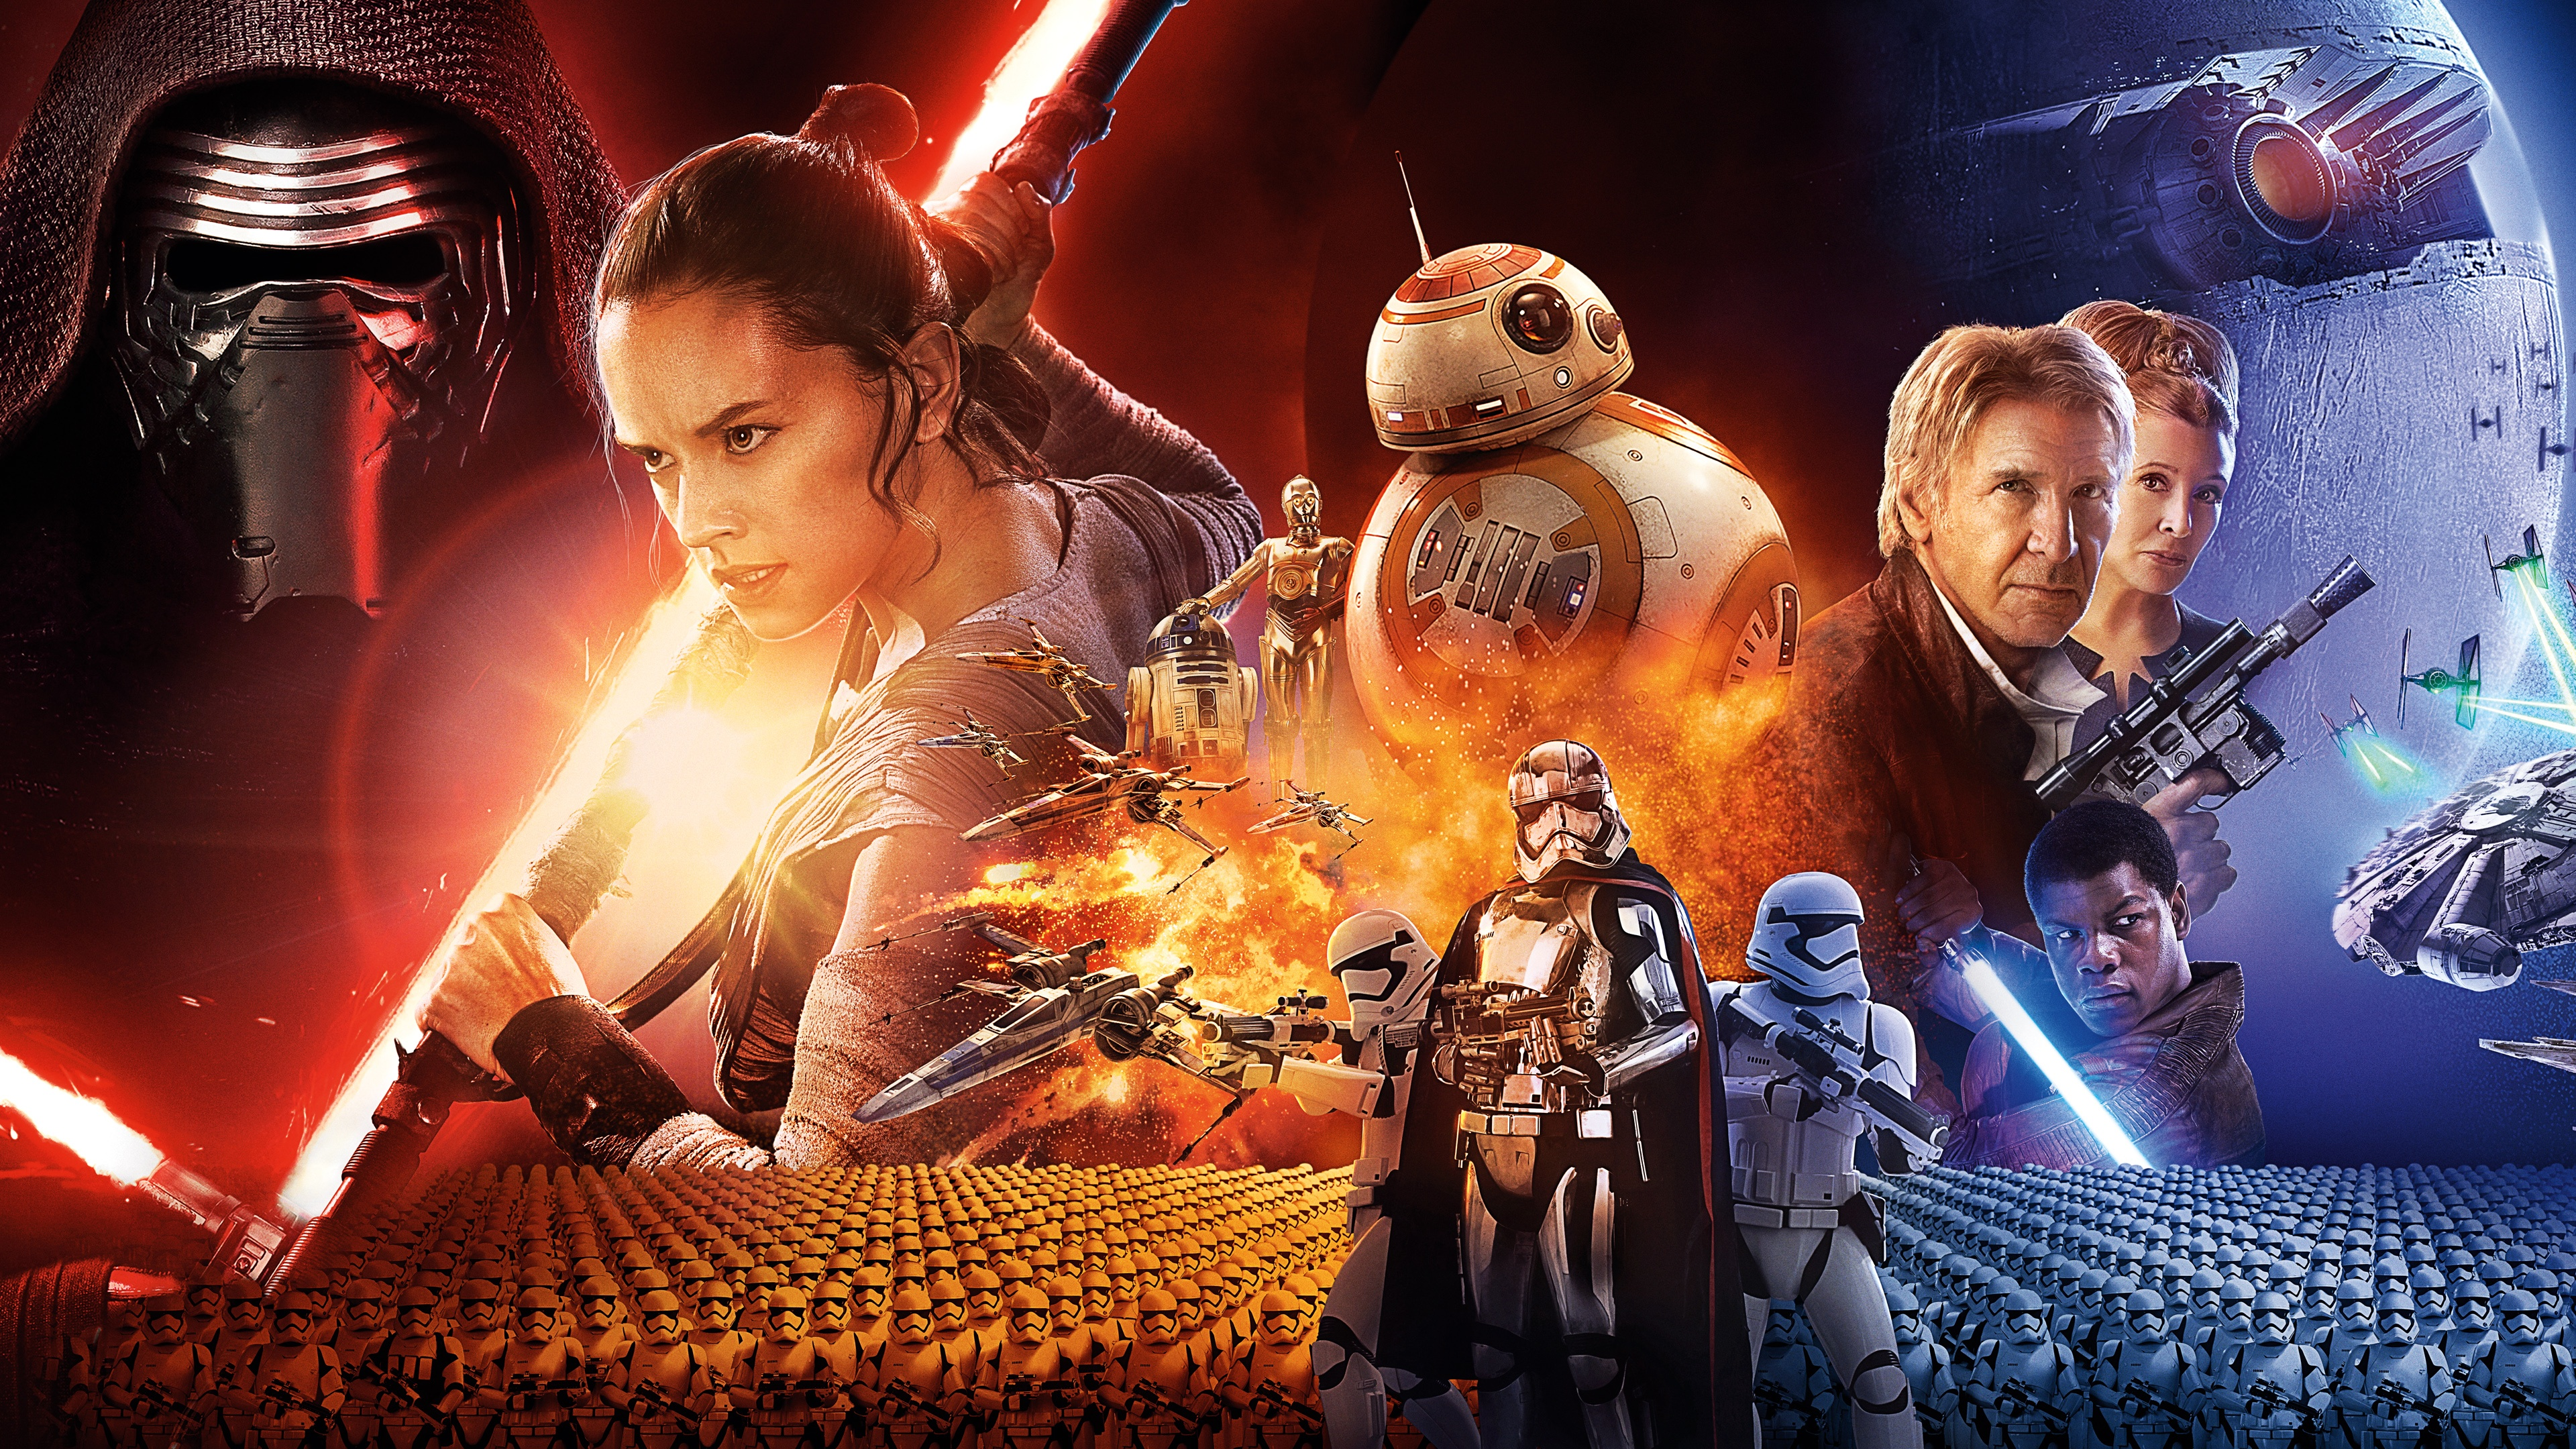 JJ Abrams Star Wars The Force Awakens Wallpapers HD Wallpapers 3840x2160